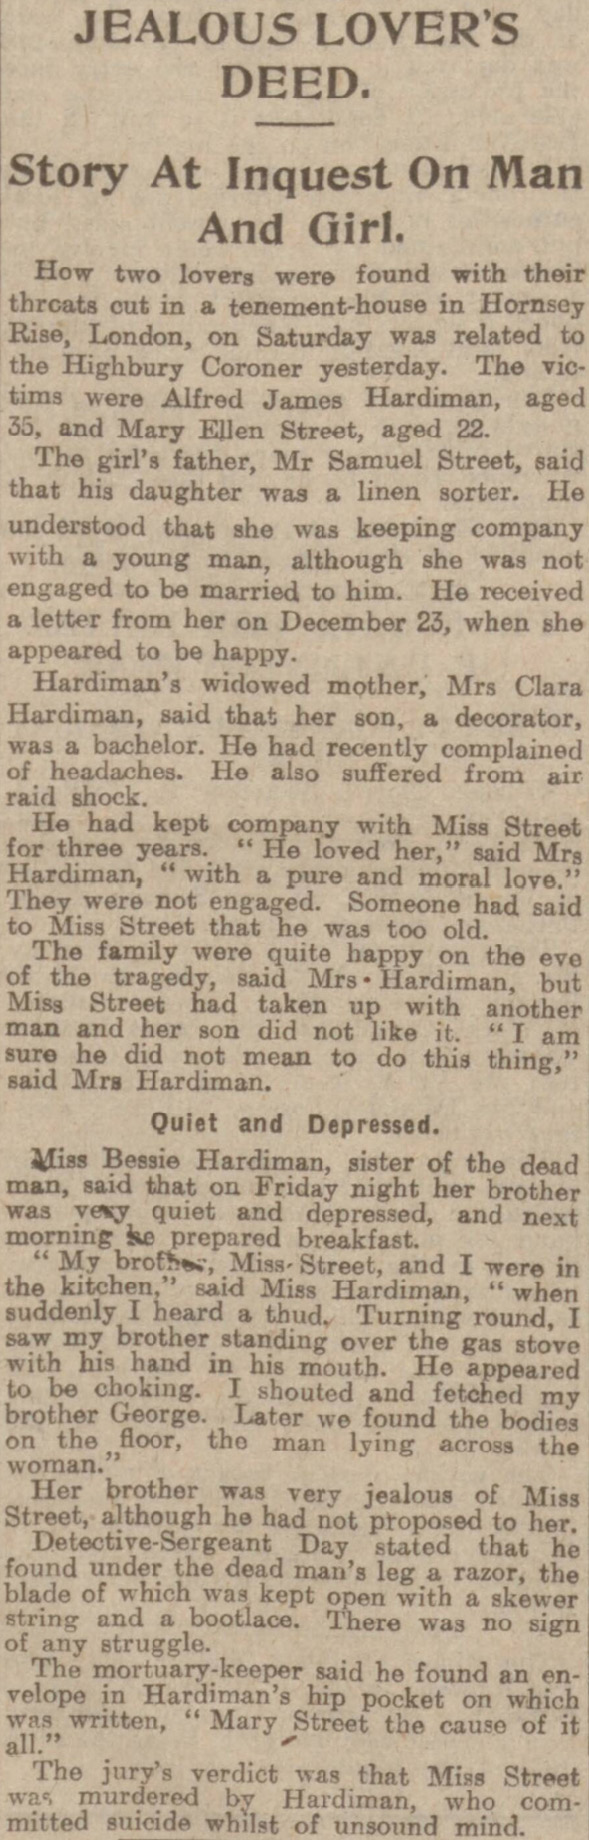 The Dundee Courier reported the tragic story of Alfred Hardiman and Mary Street in 1923.